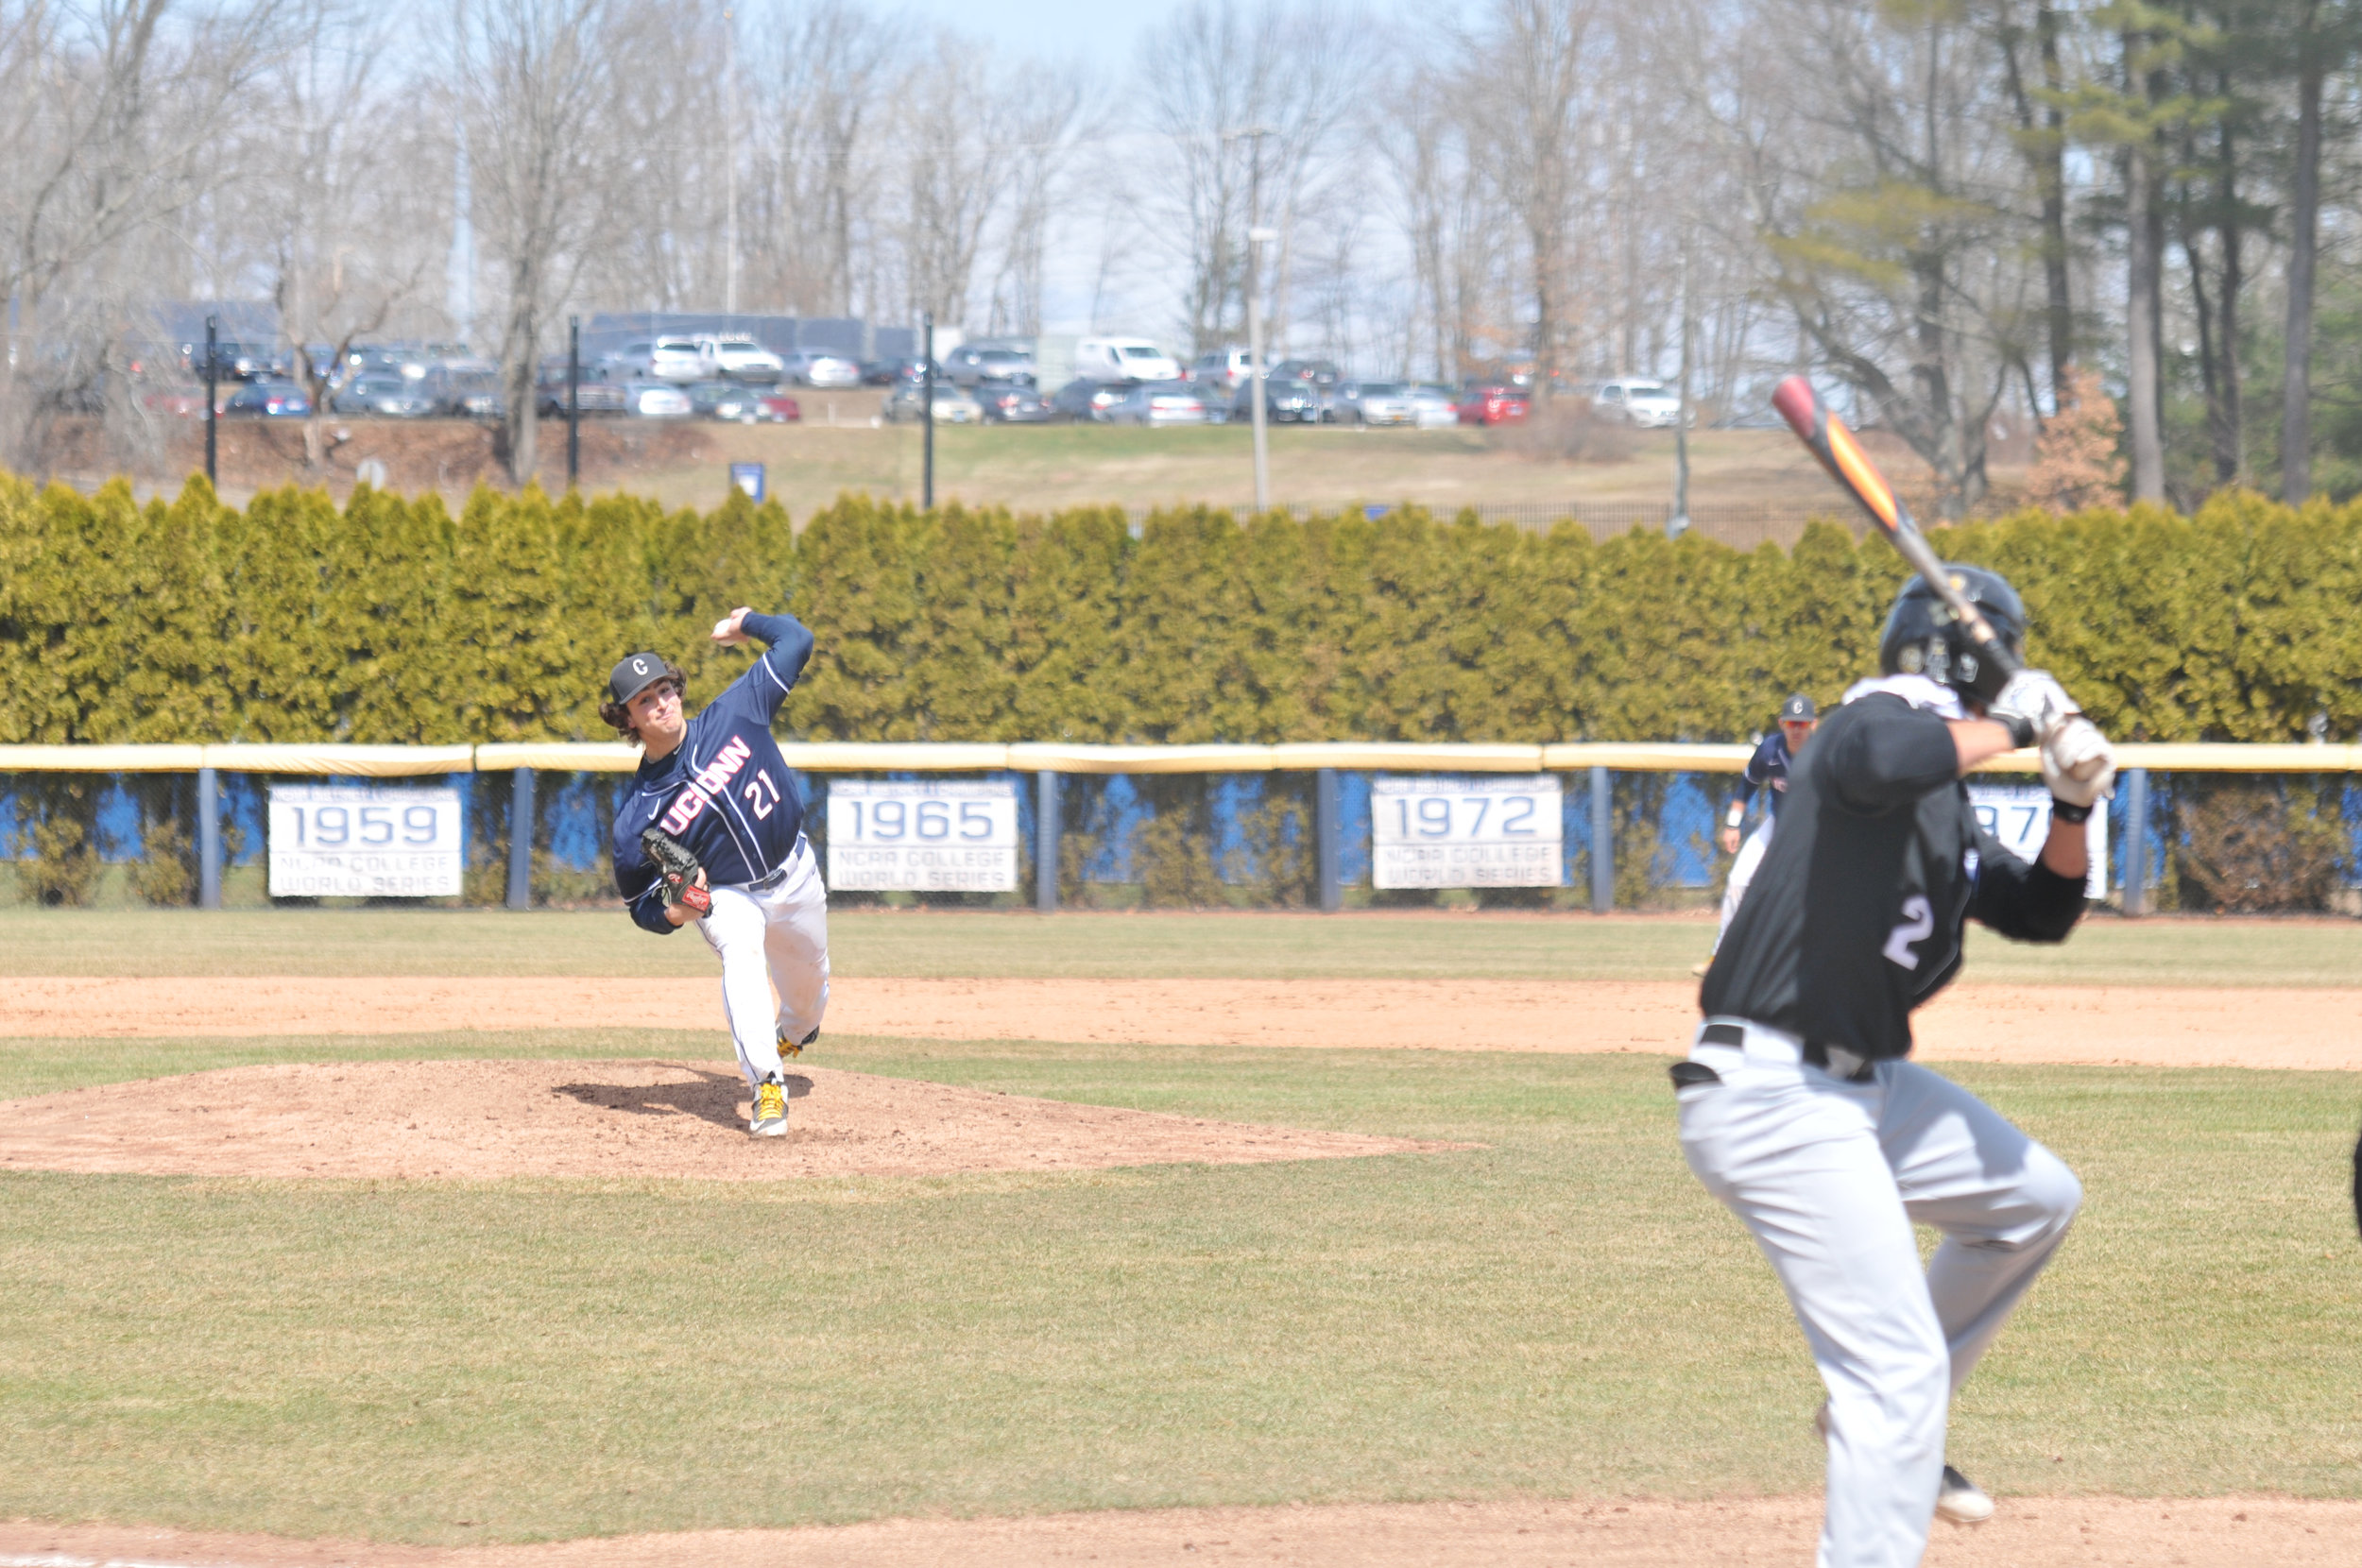 Mason Feole will be a force to be reckoned with on the mound this year. (File photo/The Daily Campus)